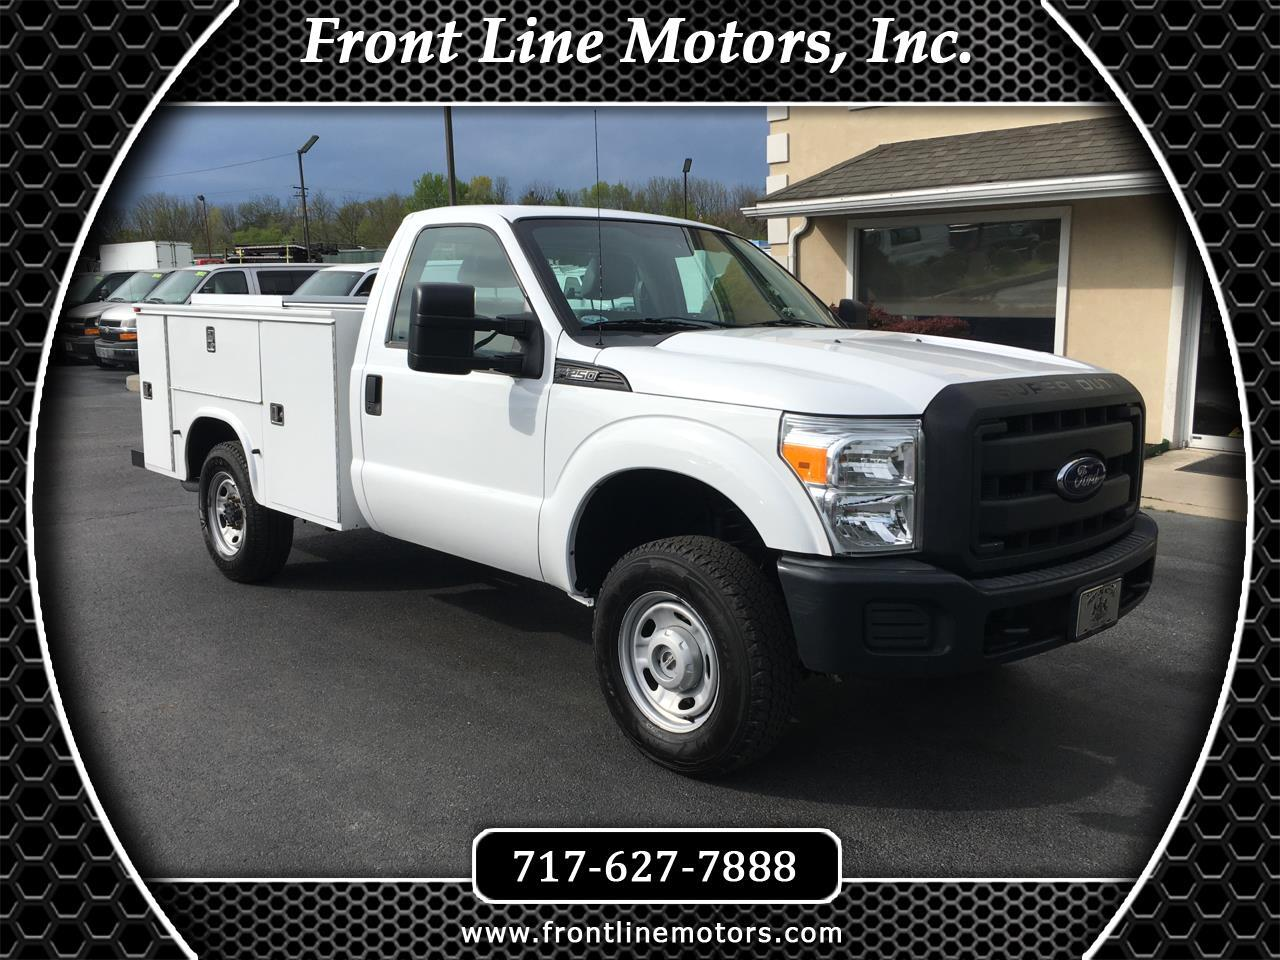 2013 Ford Super Duty F-250 SRW 4WD Reg Cab 137